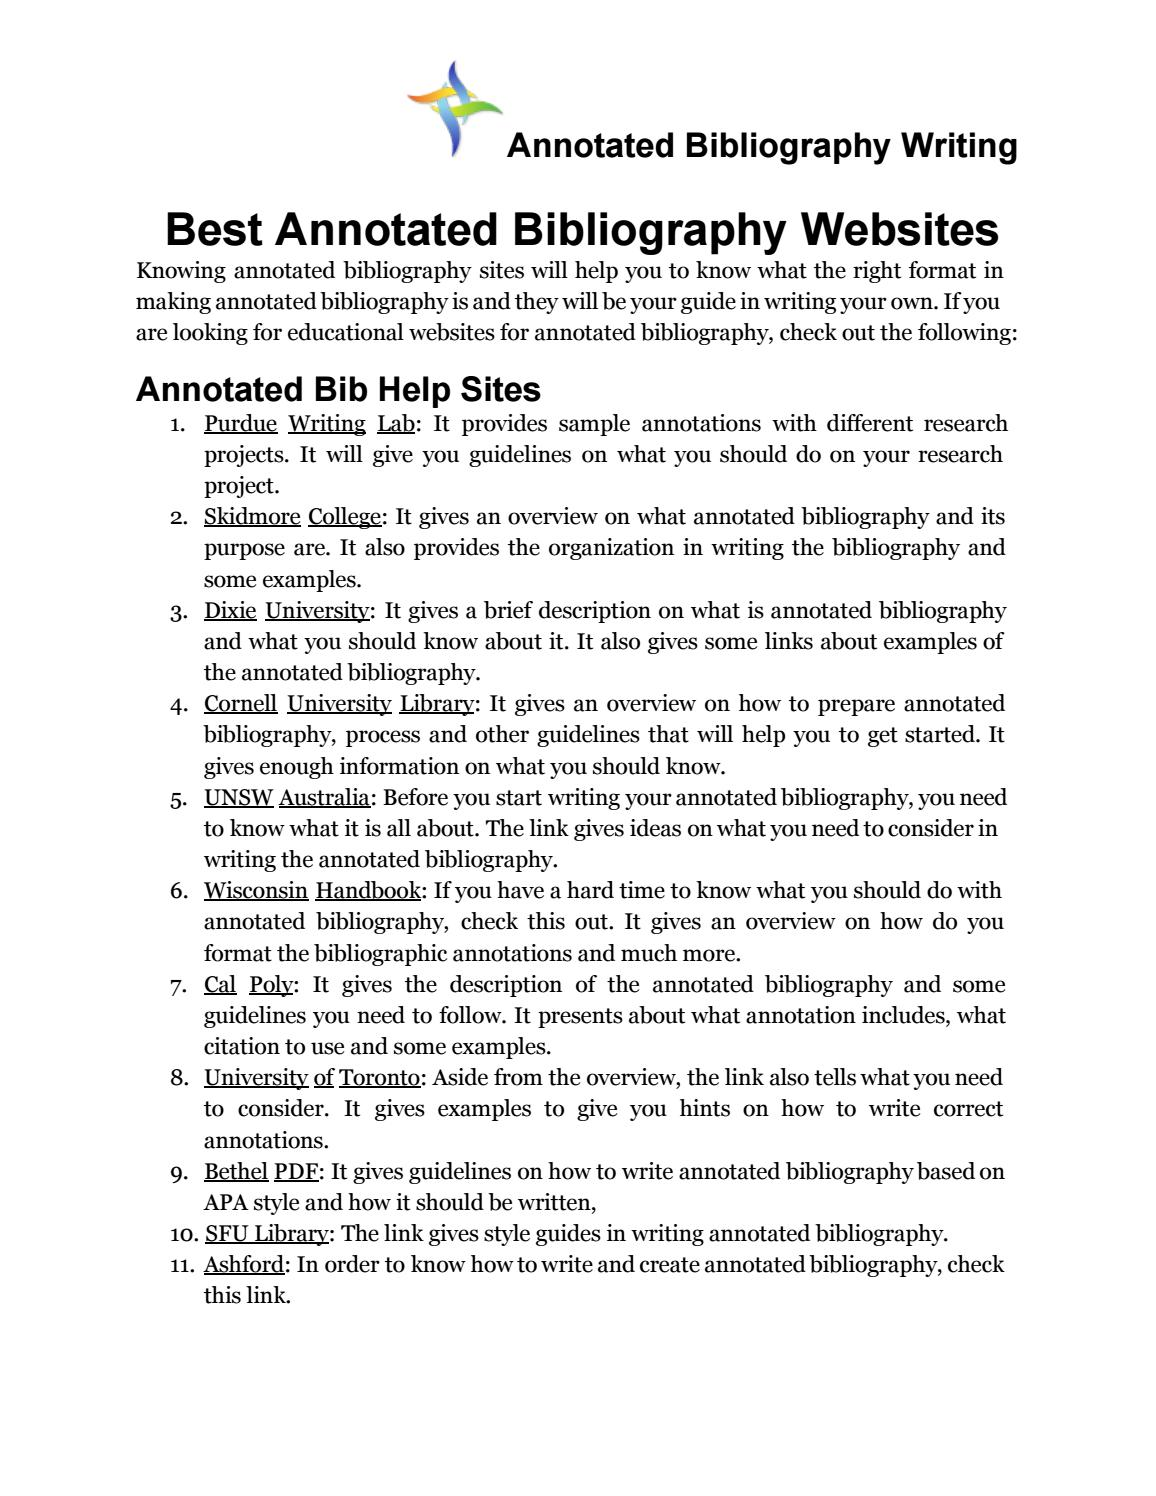 Pay to get best annotated bibliography best university essay editor websites